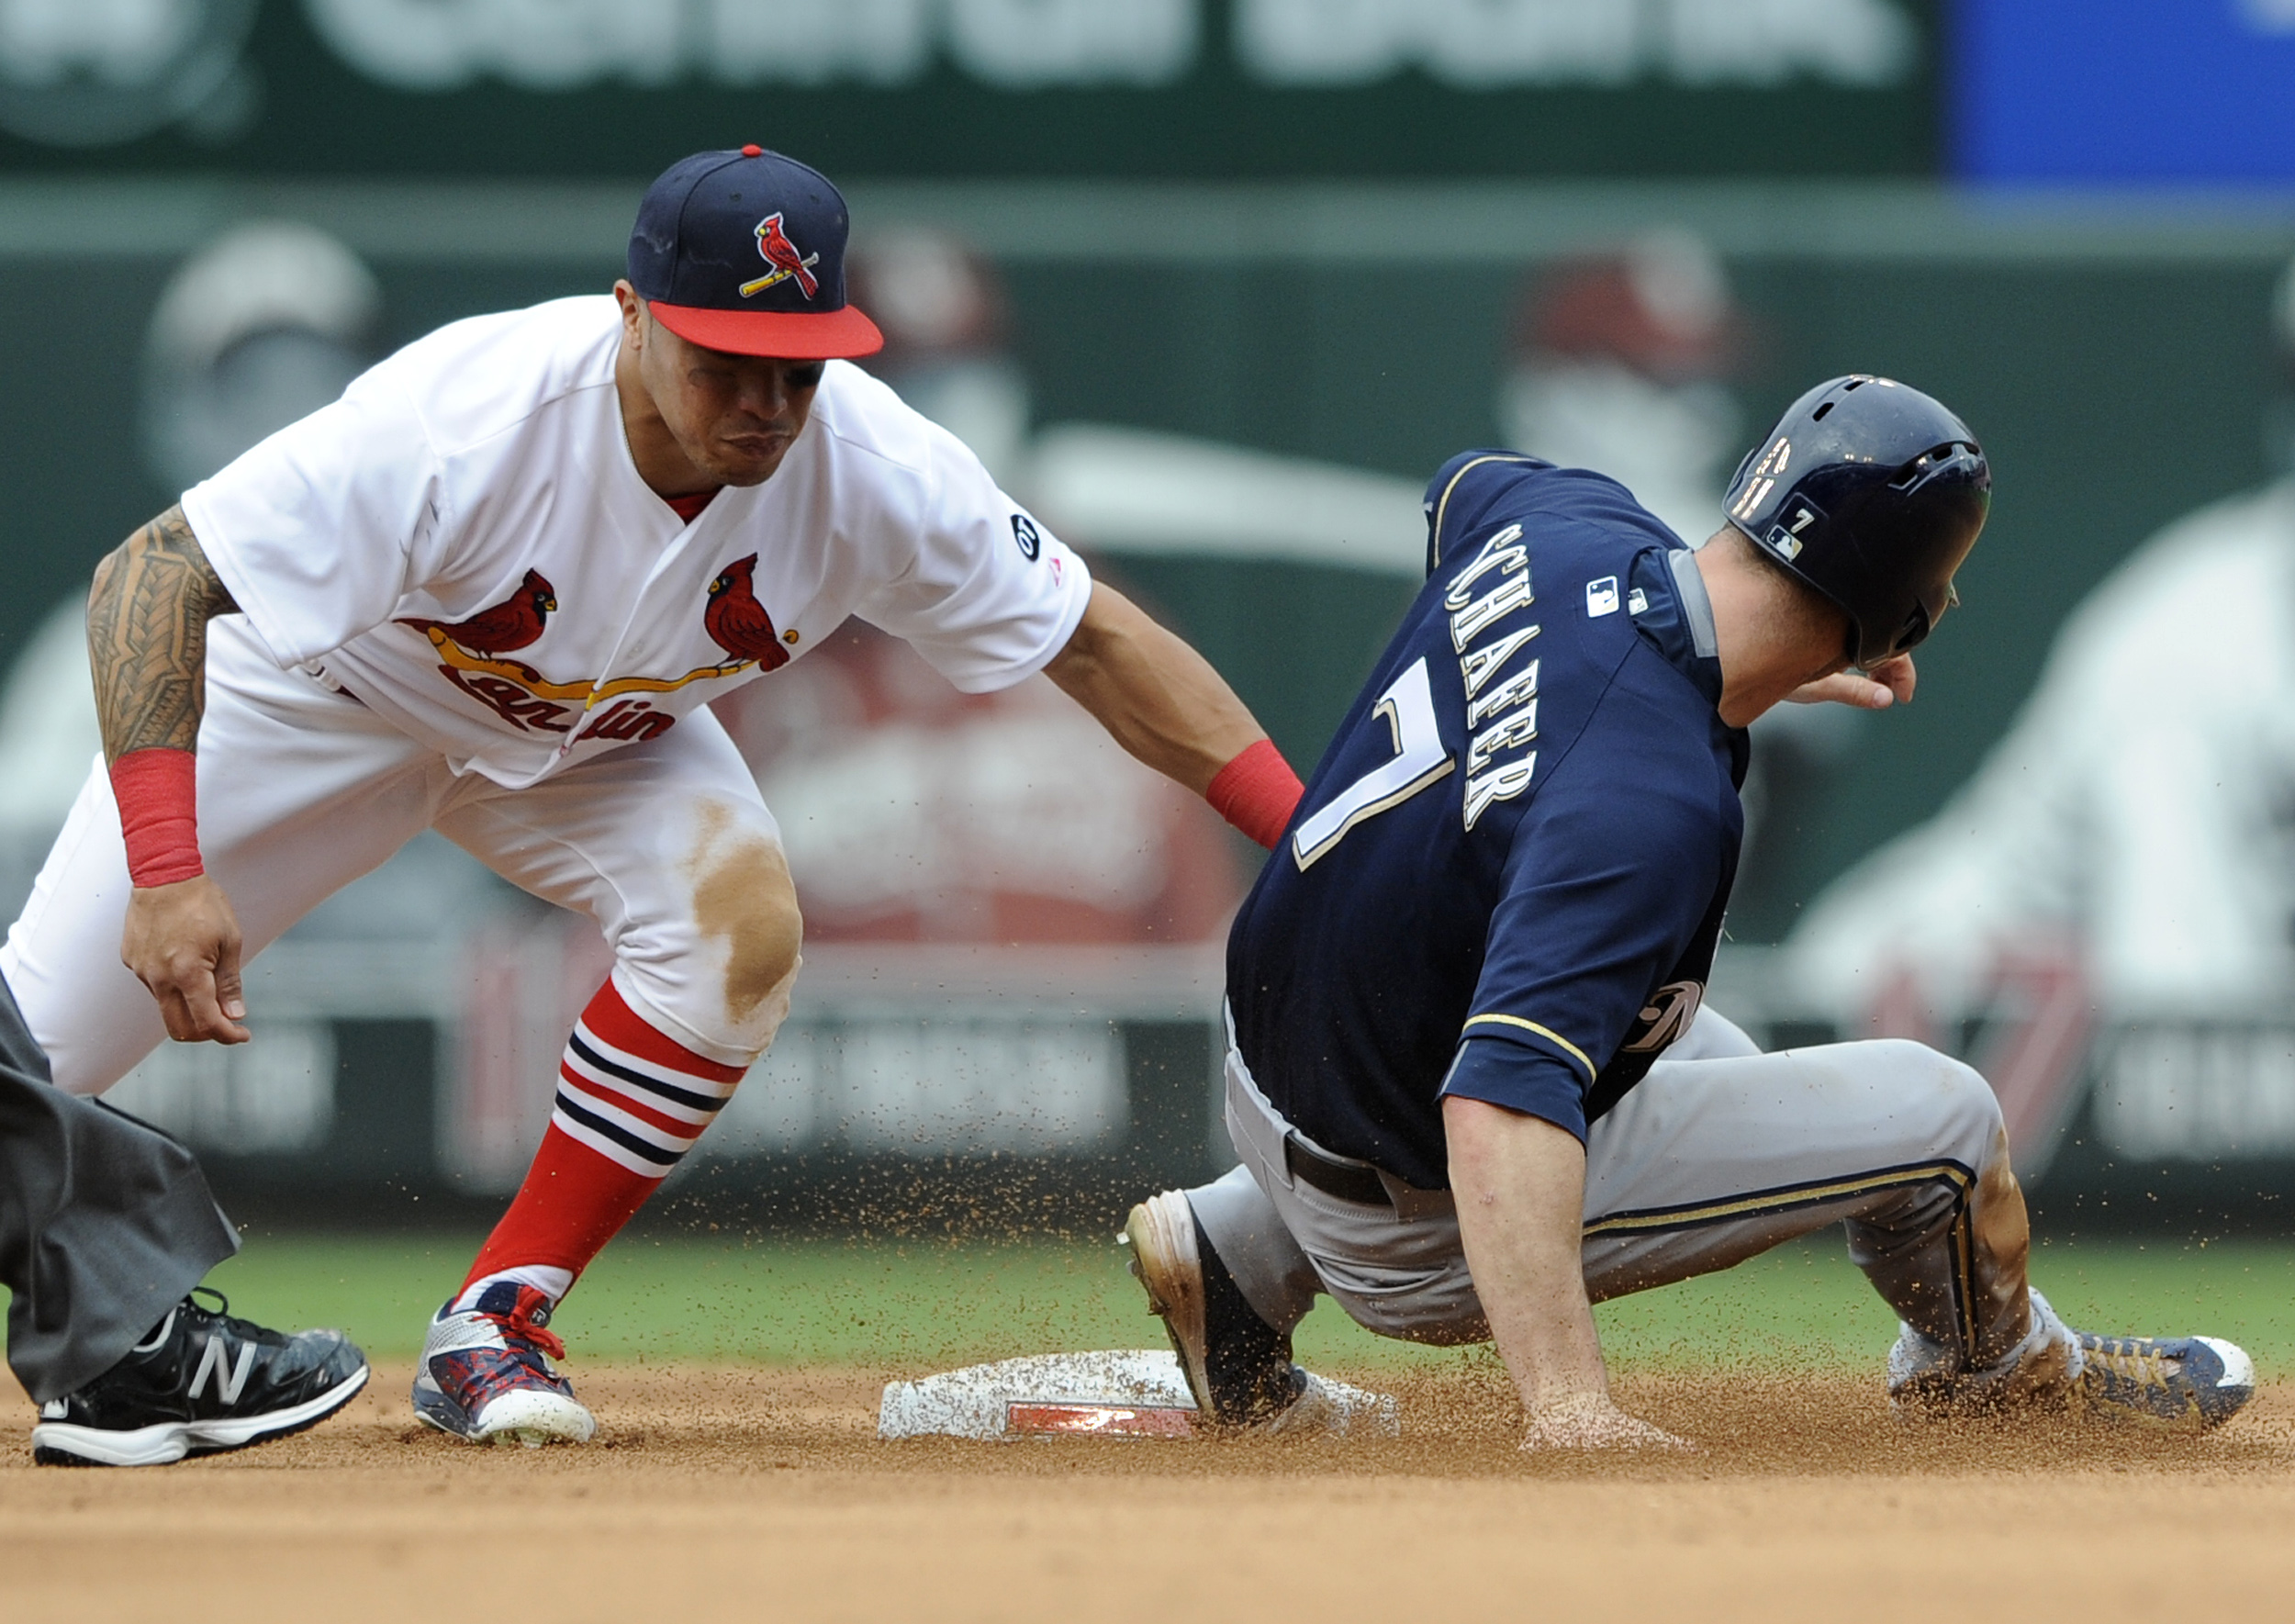 St. Louis Cardinals' Kolten Wong, left, cannot make the tag on Milwaukee Brewers' Logan Schaefer (7) in the sixth inning of a baseball game, Sunday, Sep. 27, 2015, at Busch Stadium in St. Louis. (AP Photo/Bill Boyce)